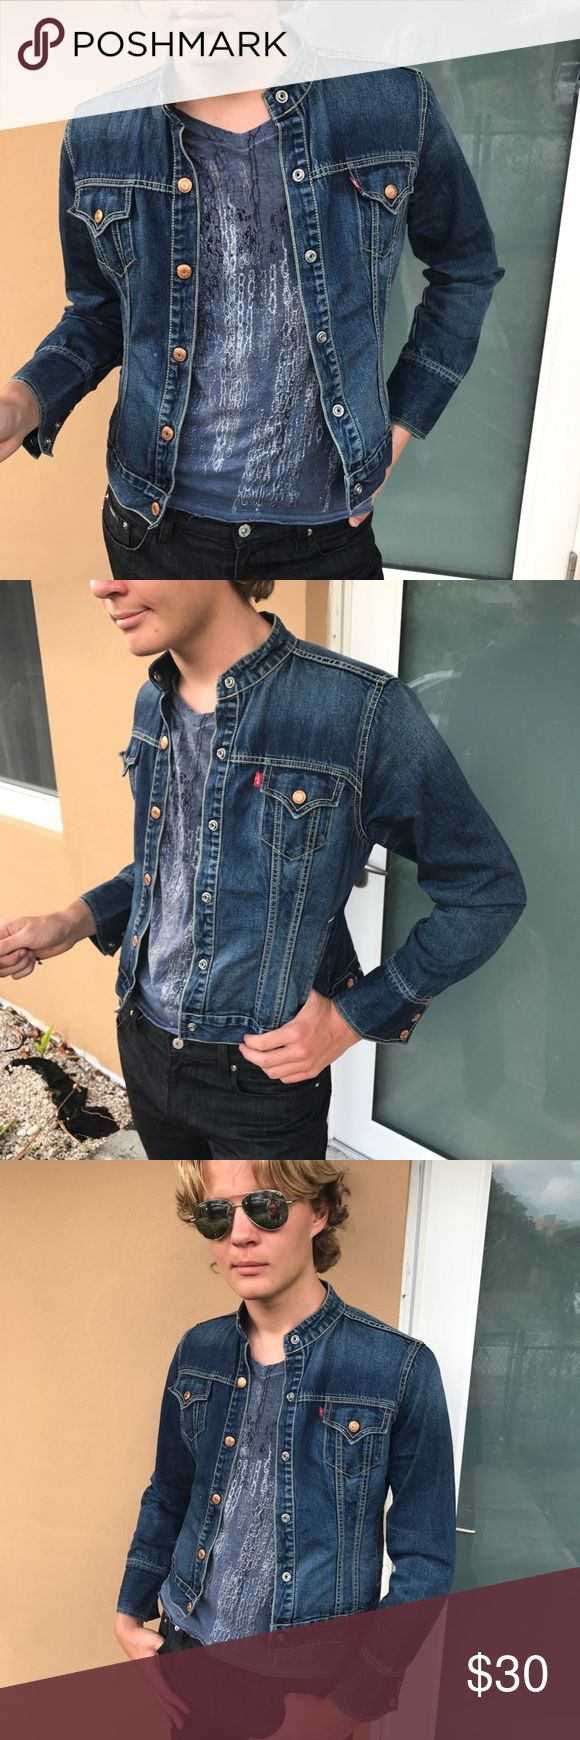 "Levi's Easy Rider Collarless Jean Jacket Medium Sm Label-Levi's  Style-""Easy Rider"" Jean Jacket, Fitted, Collarless and Snaps Closed. Side Snaps for Fitted hem.  Size-M Womens but Men S can wear it too. Shown on me as a Size 10 and on my Son who has outgrown it and is now a M. One size too small on him. Fits a women 6, 8 best, Men XS or Small Measurements-B-38 Hip-36 Shoulder to hem-24  Fabric-100% Cotton  Condition-Well Worn and Broken in. No Rips. Very Rock (With Jackson Browne Statute in…"